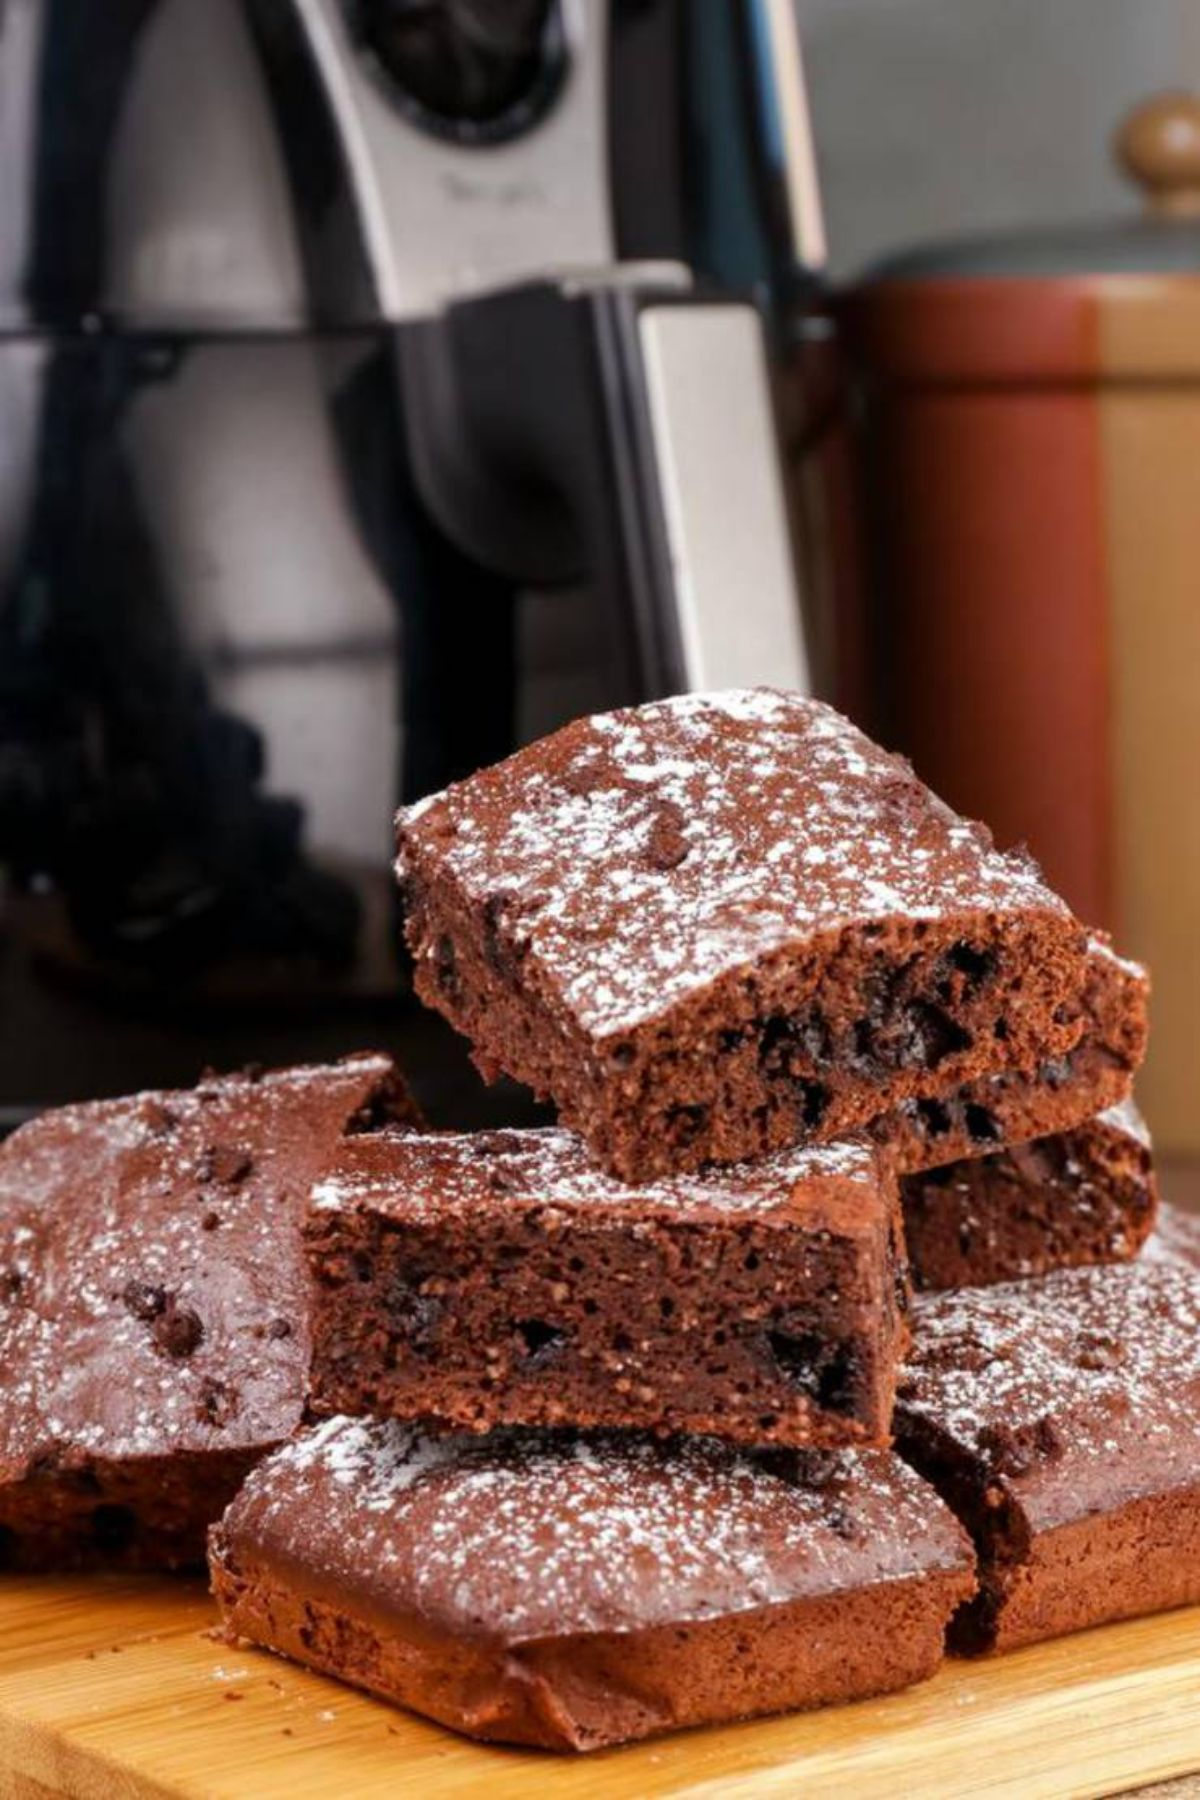 In front of an air fryer on a wooden board is a pile of chocolate brownies